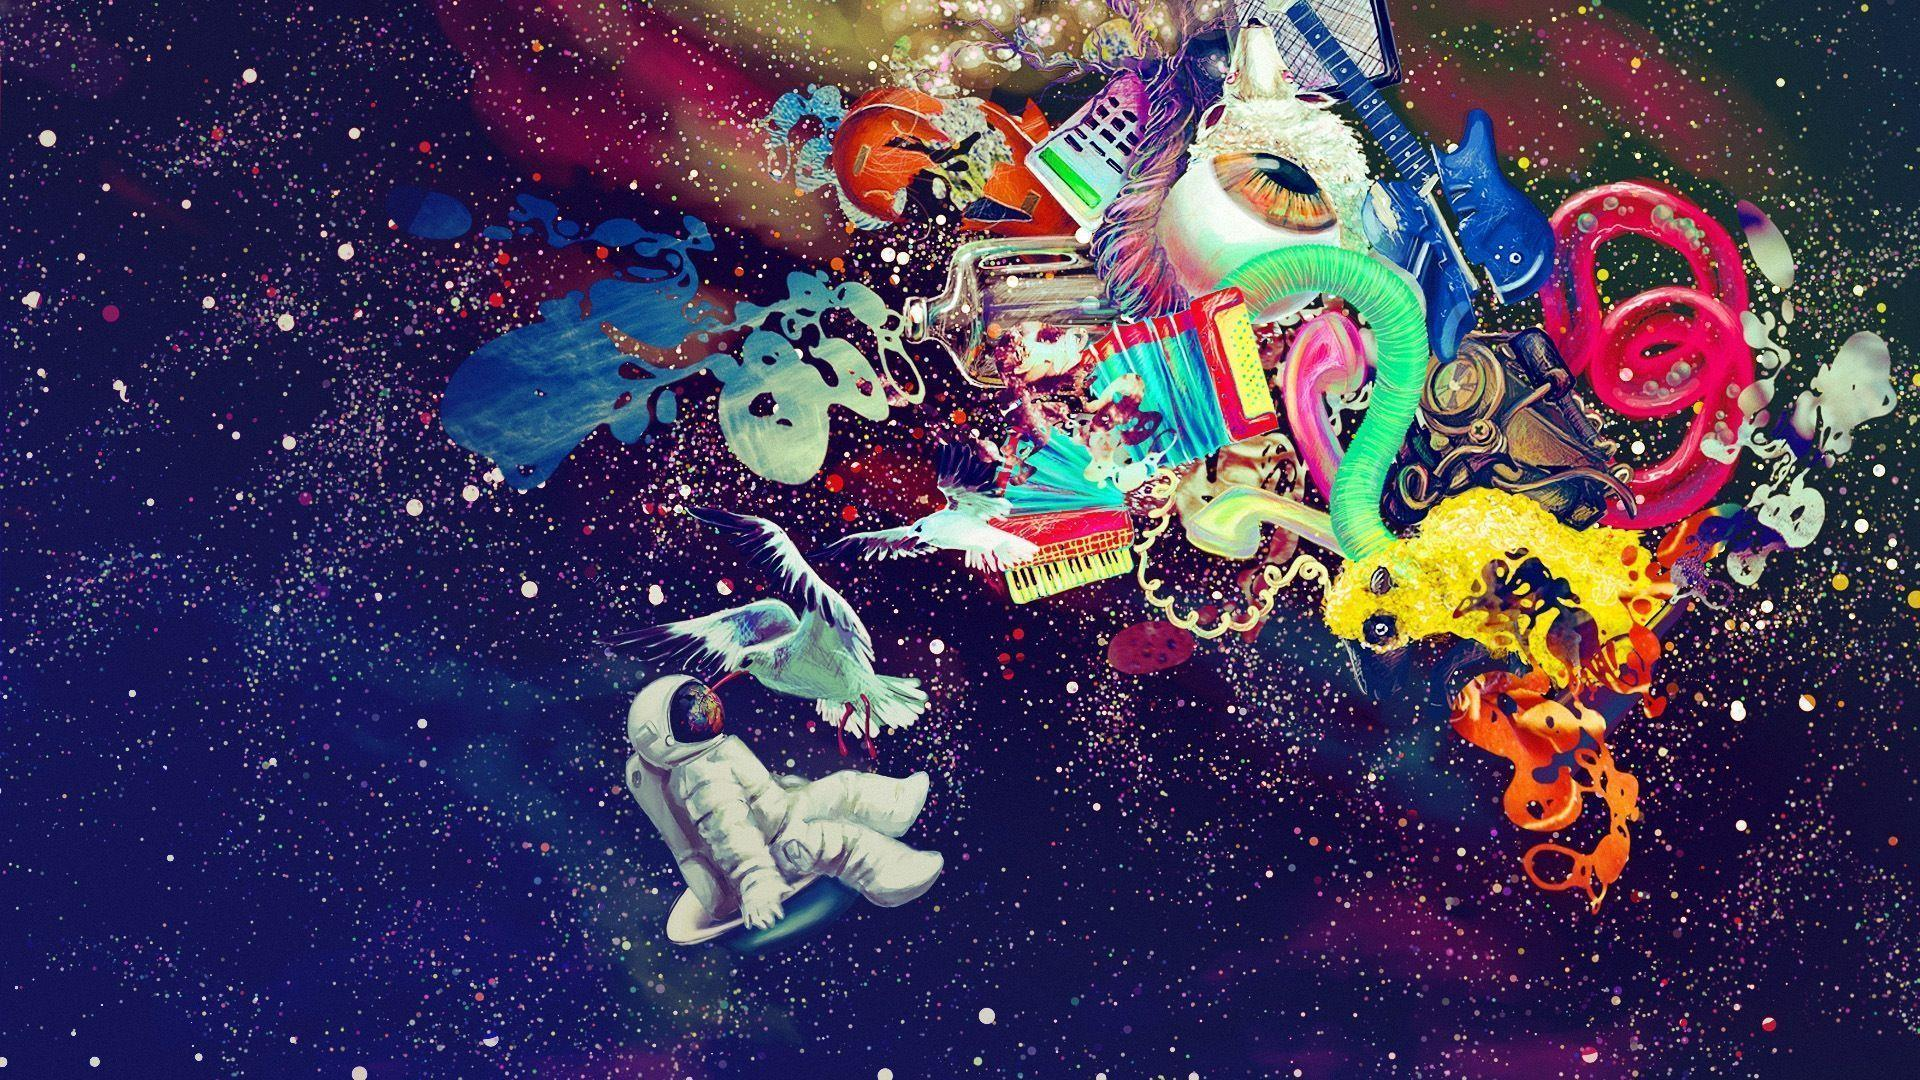 Trippy Wallpapers Hd Tumblr Space